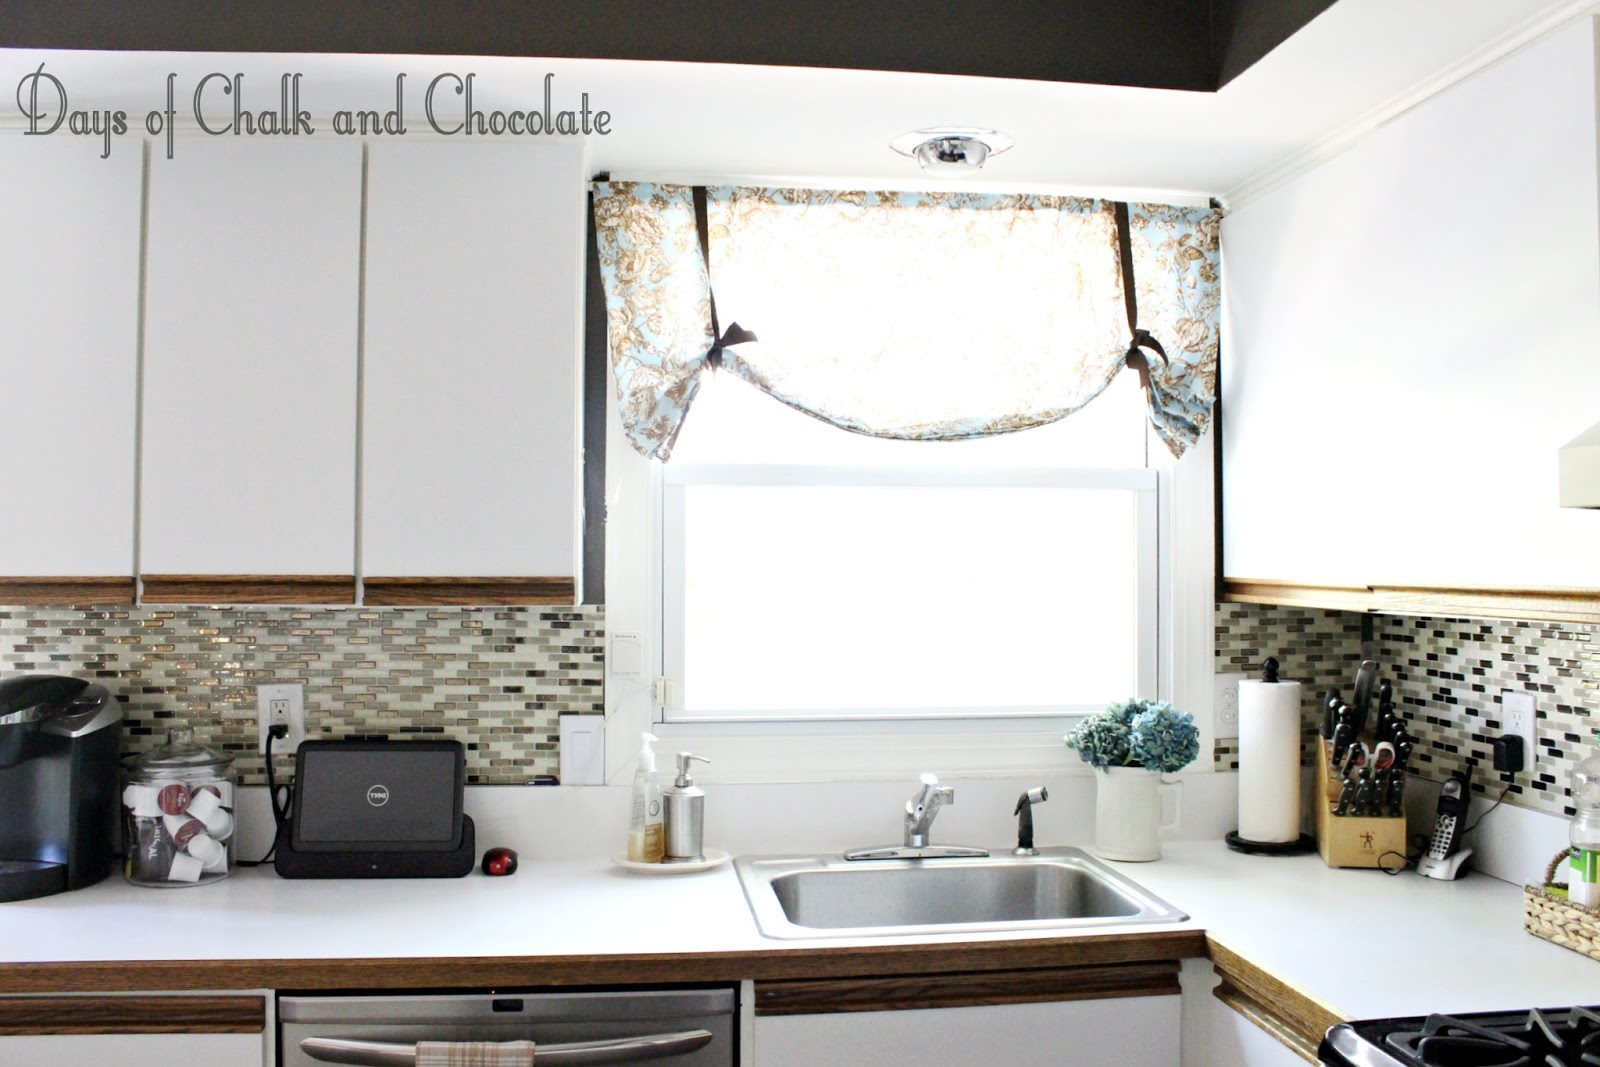 Easy DIY Self Adhesive Faux Tile Backsplash | Days Of Chalk And Chocolate